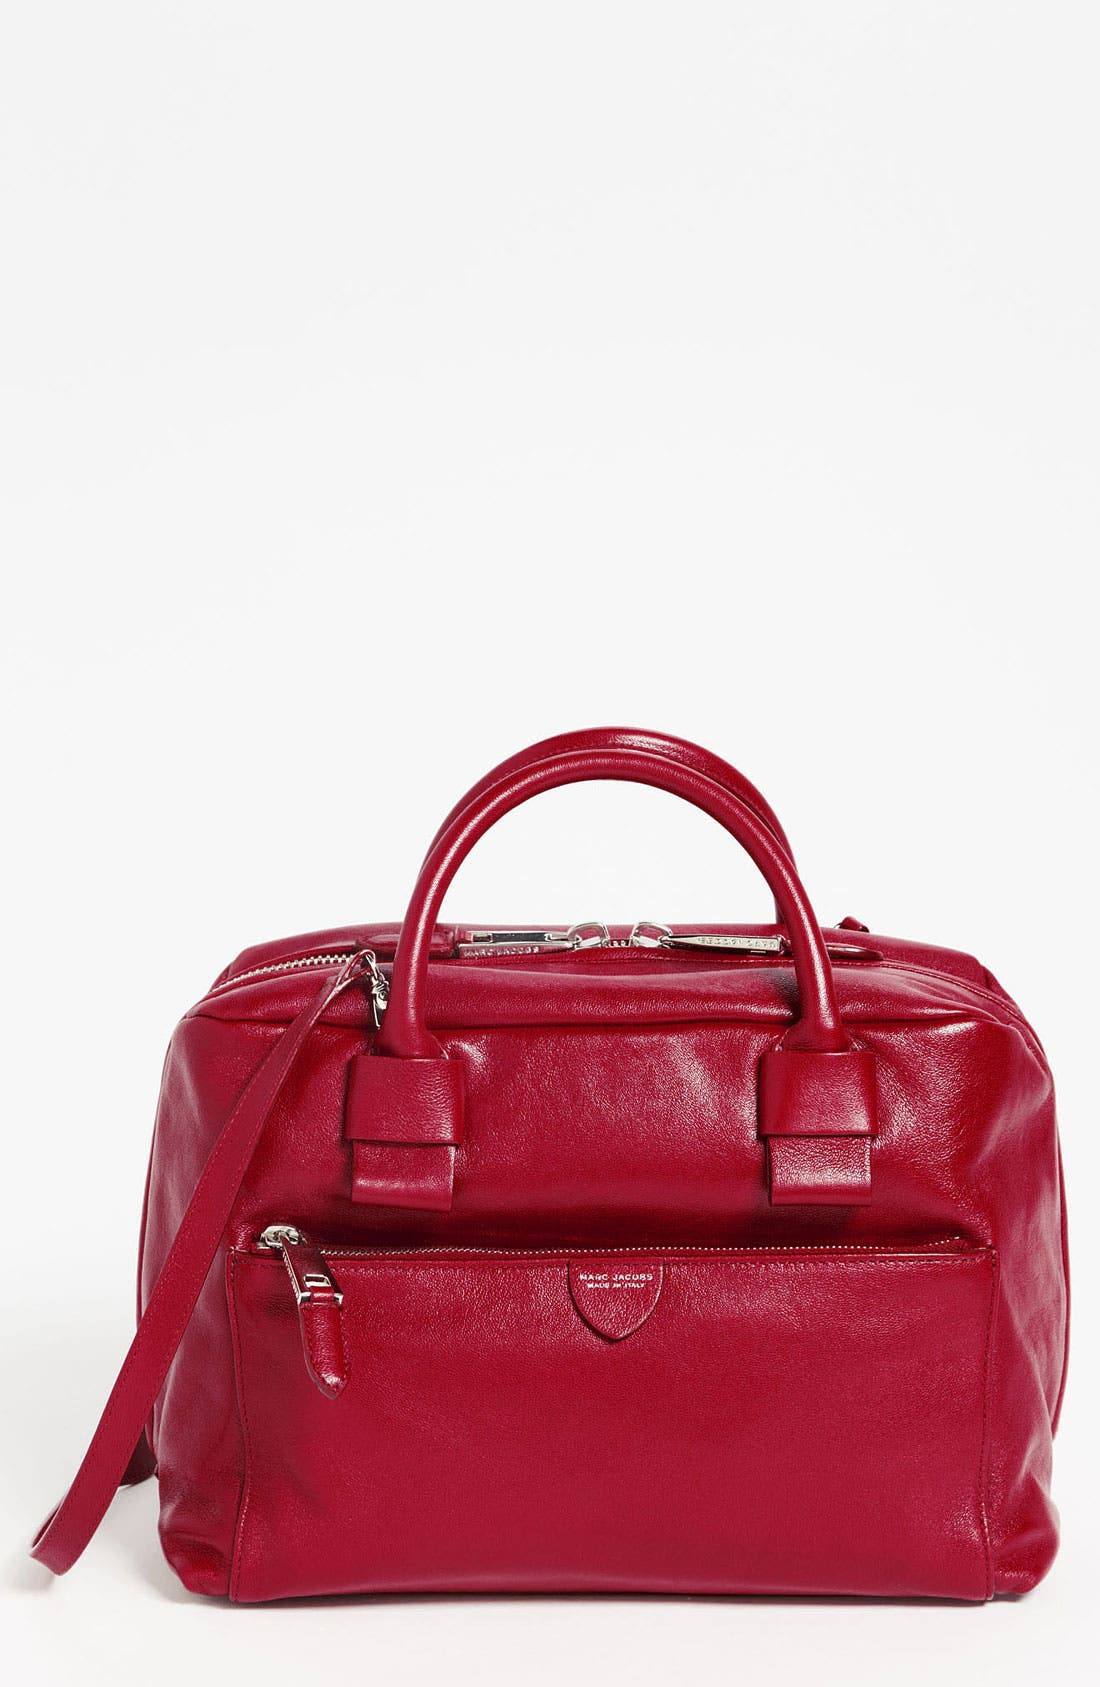 Main Image - MARC JACOBS 'Prince - Small Antonia' Leather Satchel